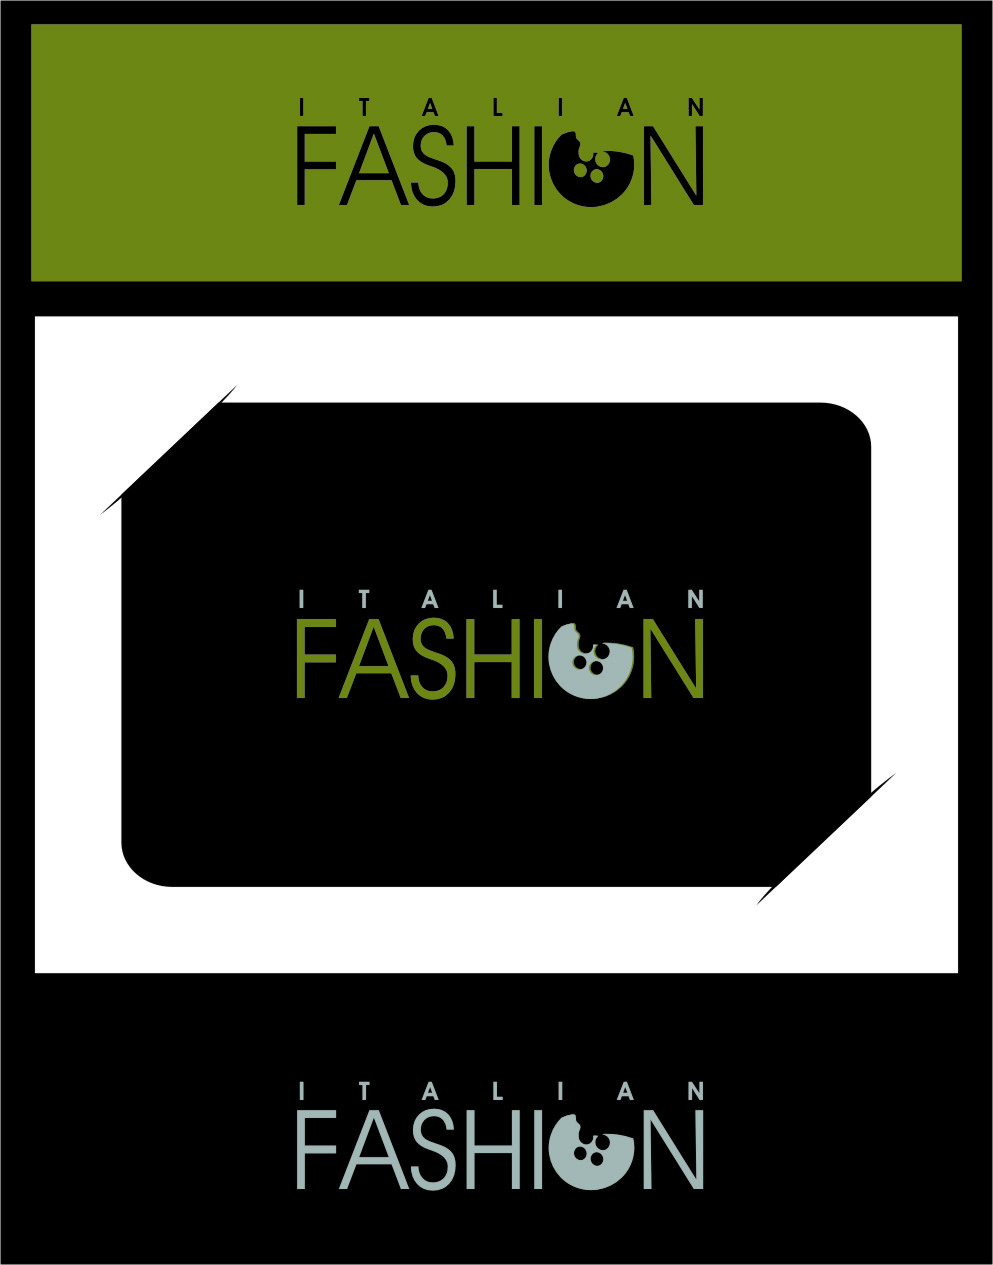 Logo Design by Ngepet_art - Entry No. 21 in the Logo Design Contest Logo for Web Page ItalianFashion.cz.